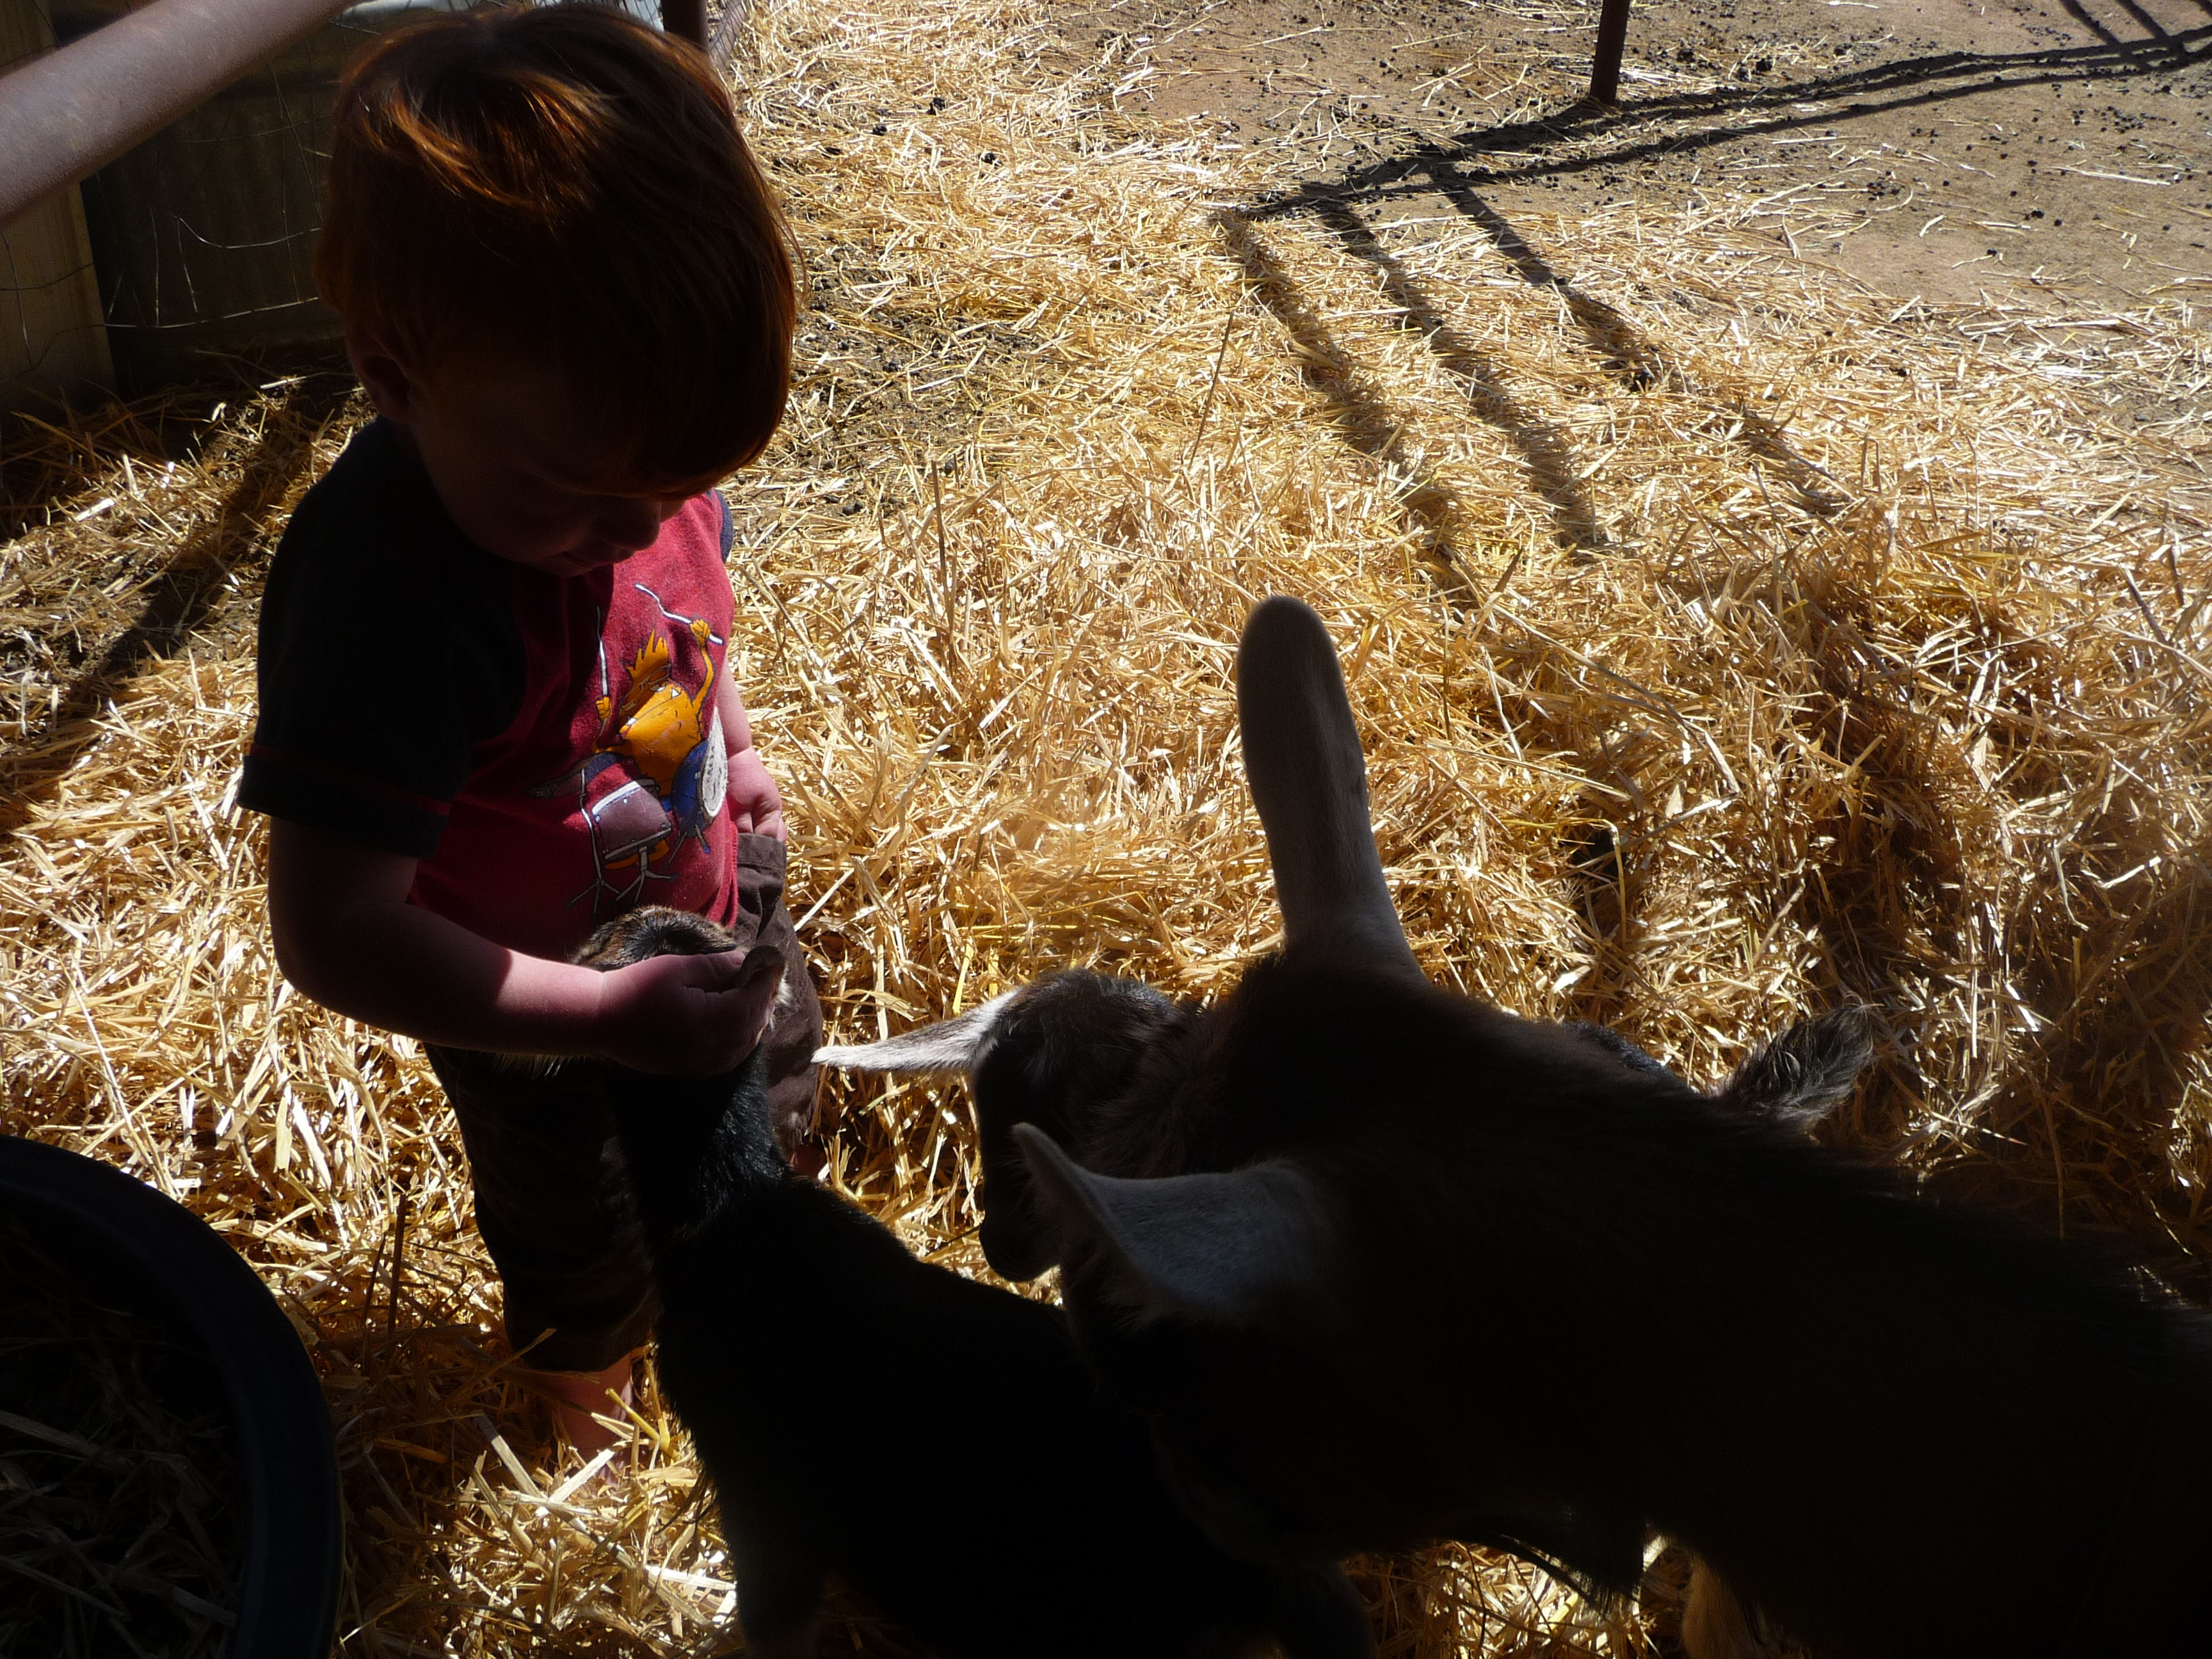 Meeting the new kids (goat kids, that is)!